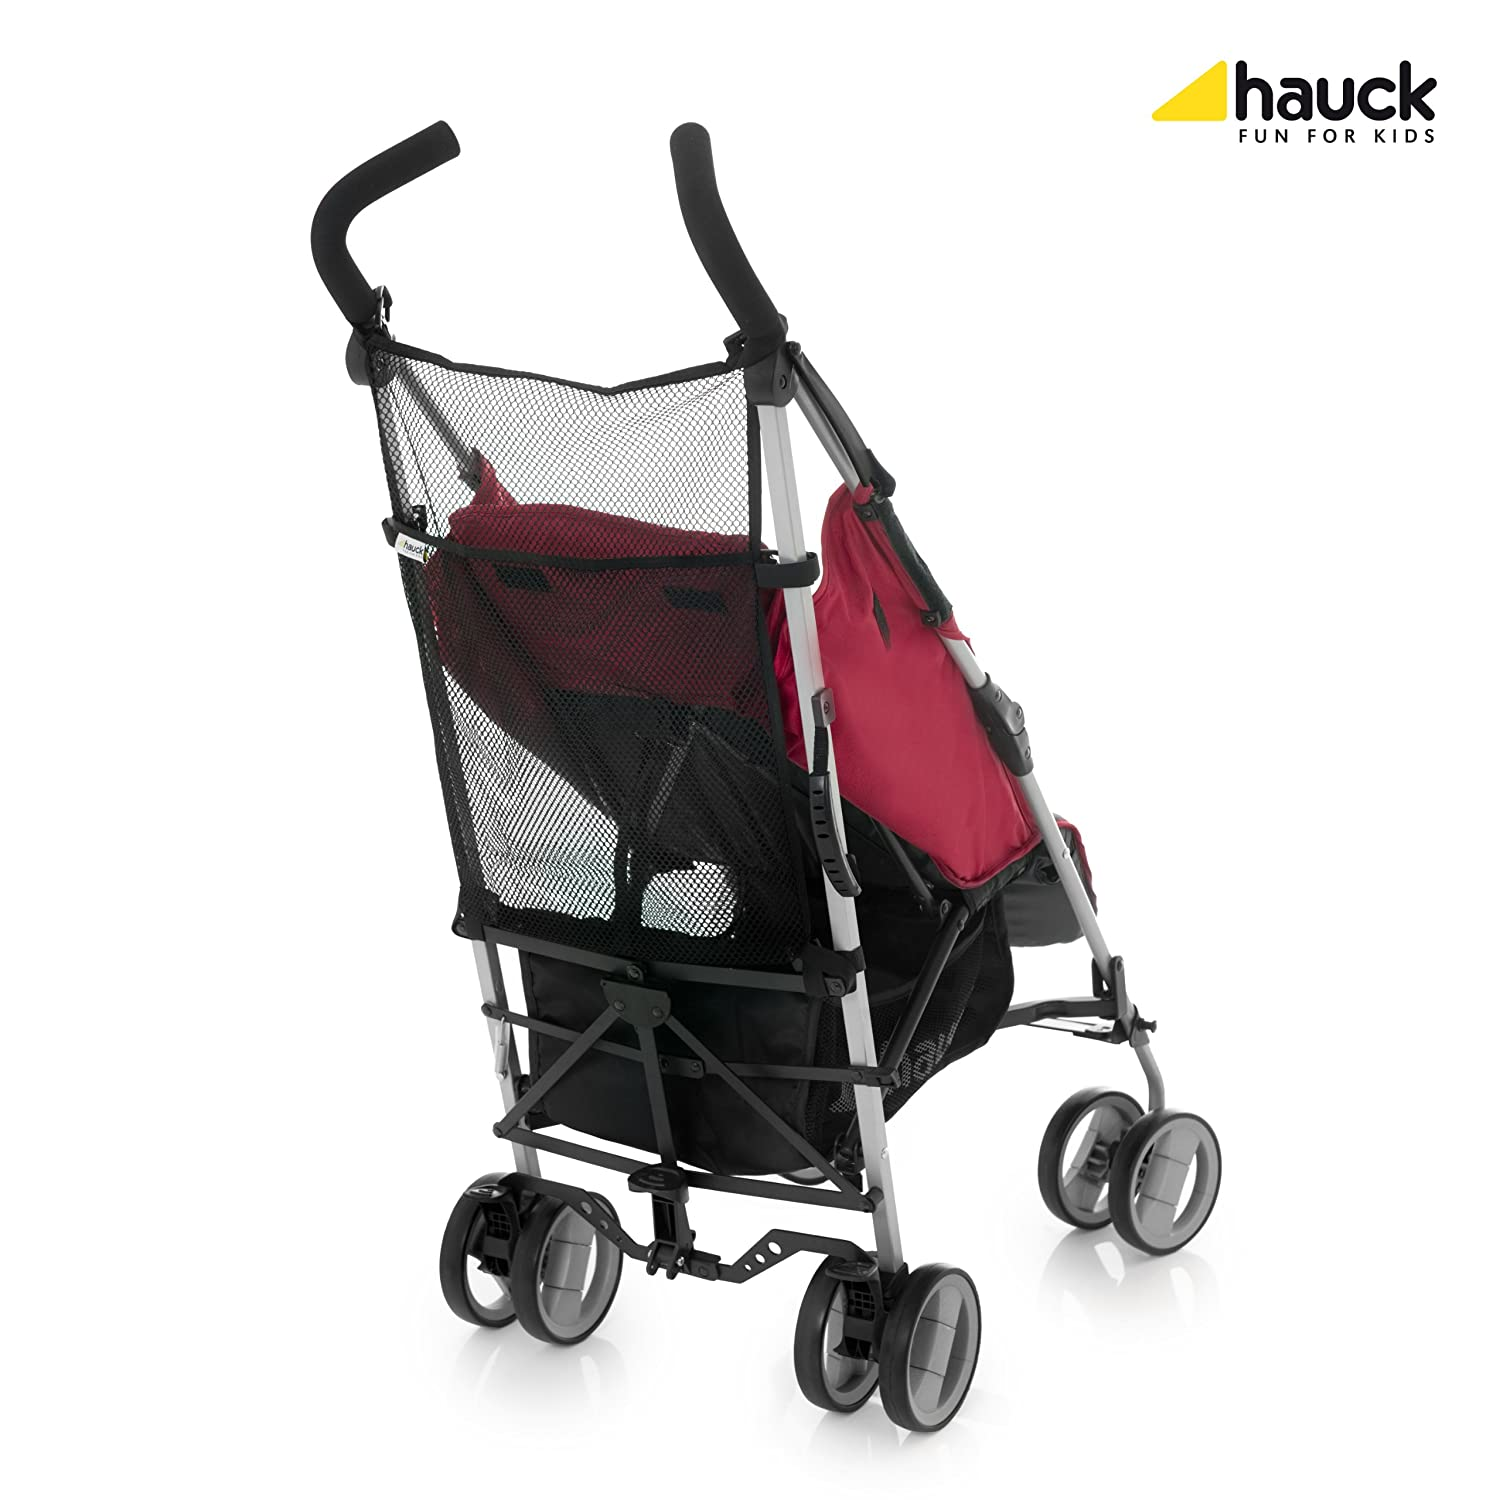 Hauck Buy Me Stroller Shopping Basket 61824